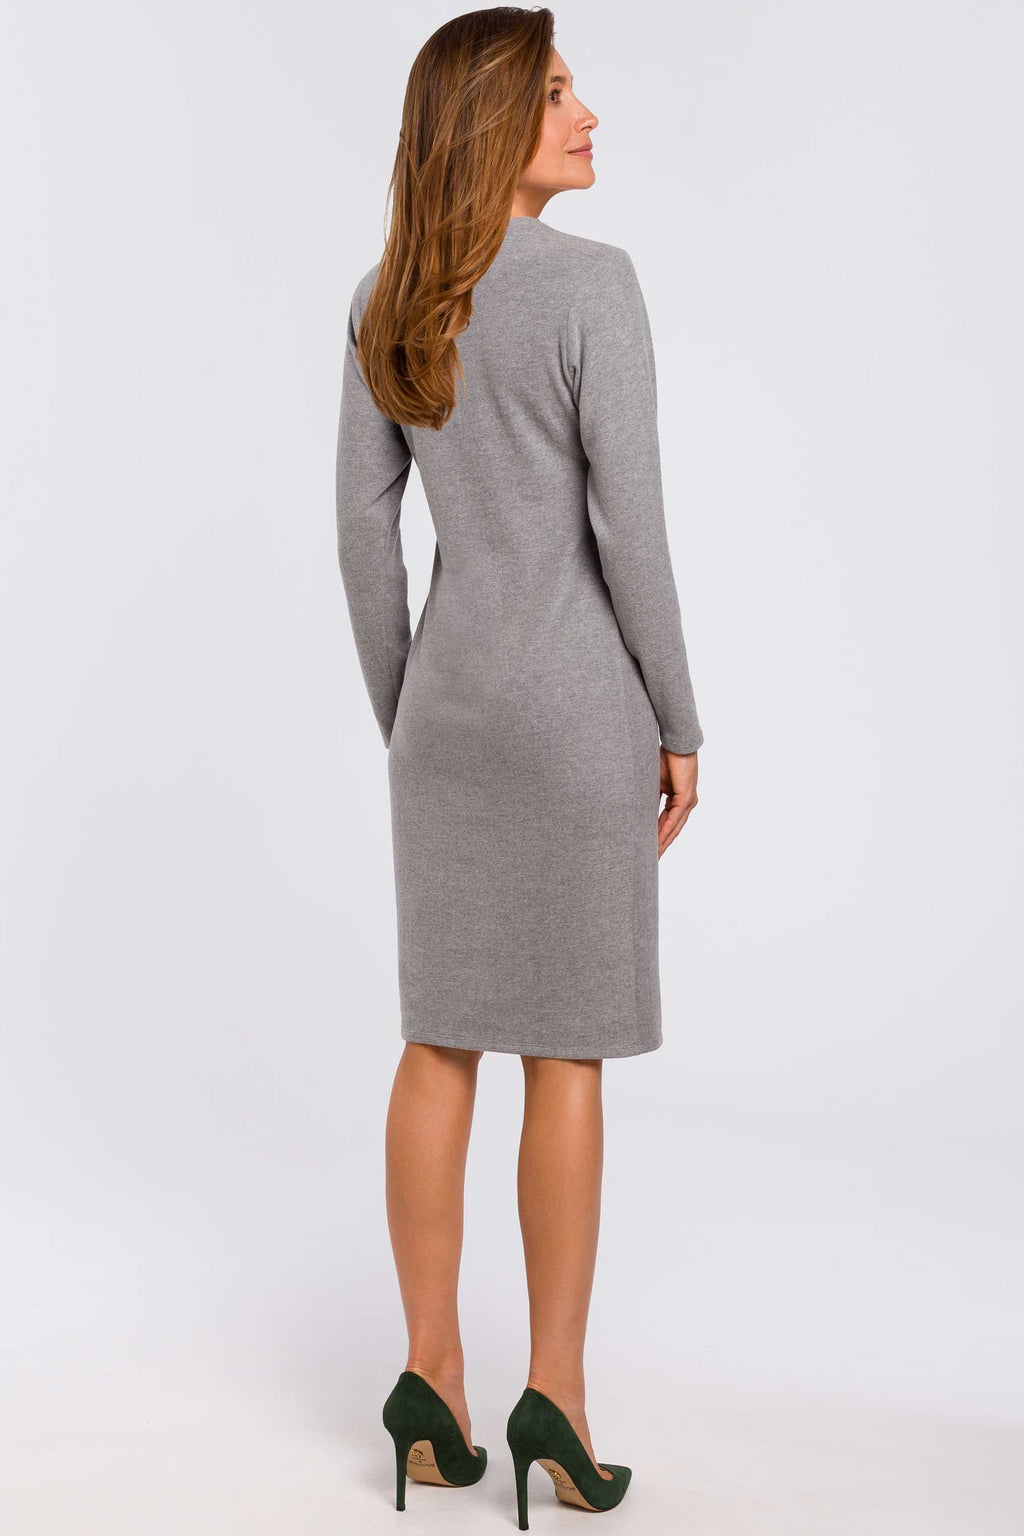 Long Sleeve Midi Grey Cotton Sweater Dress - So Chic Boutique